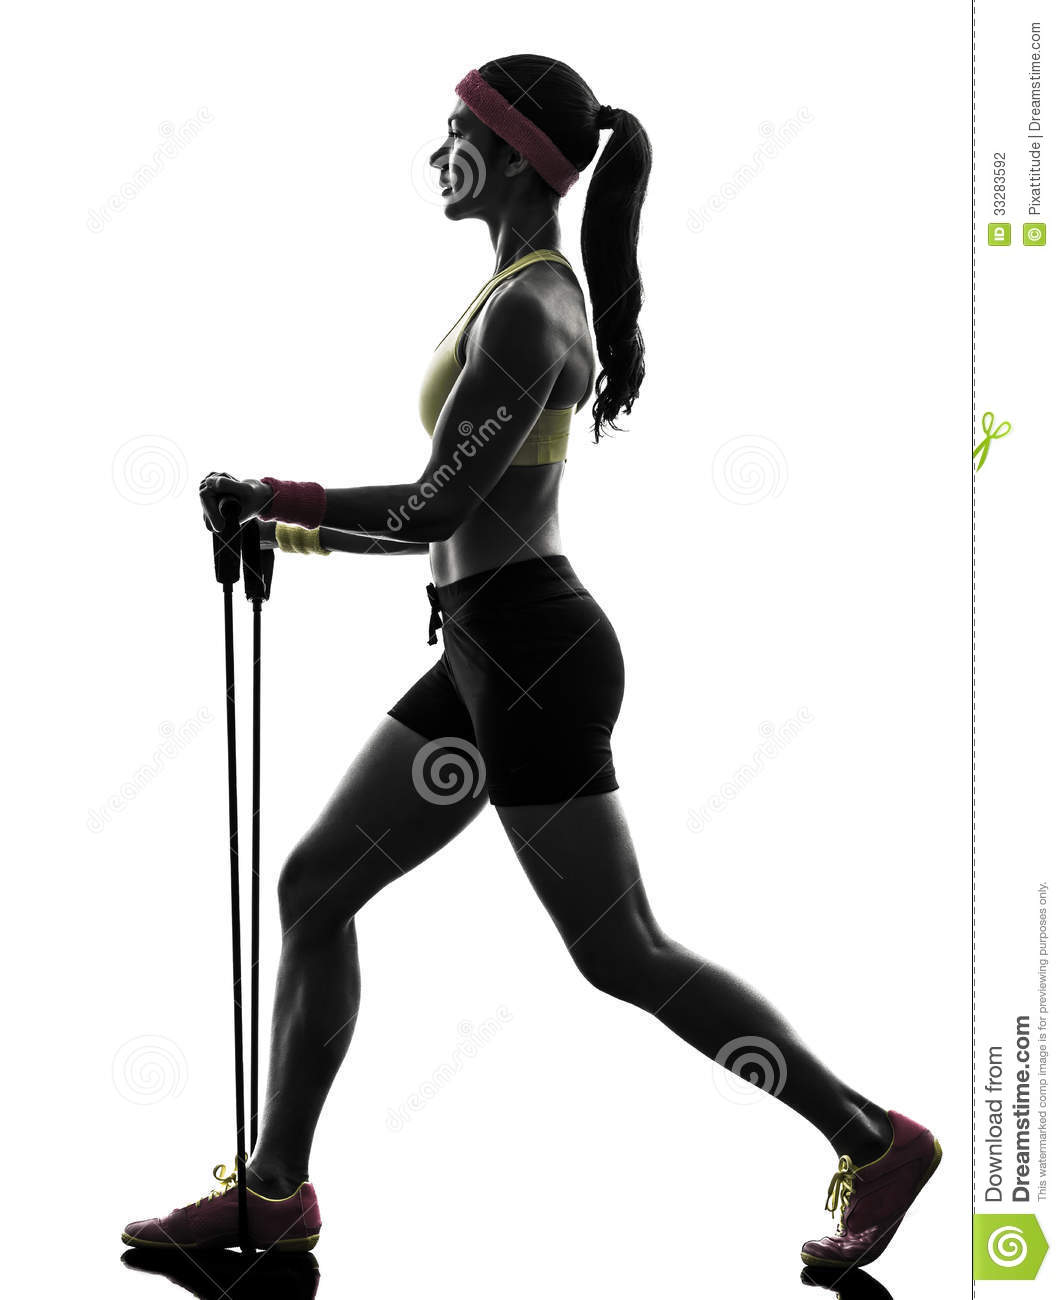 Workout Photography: Woman Exercising Fitness Workout Resistance Bands